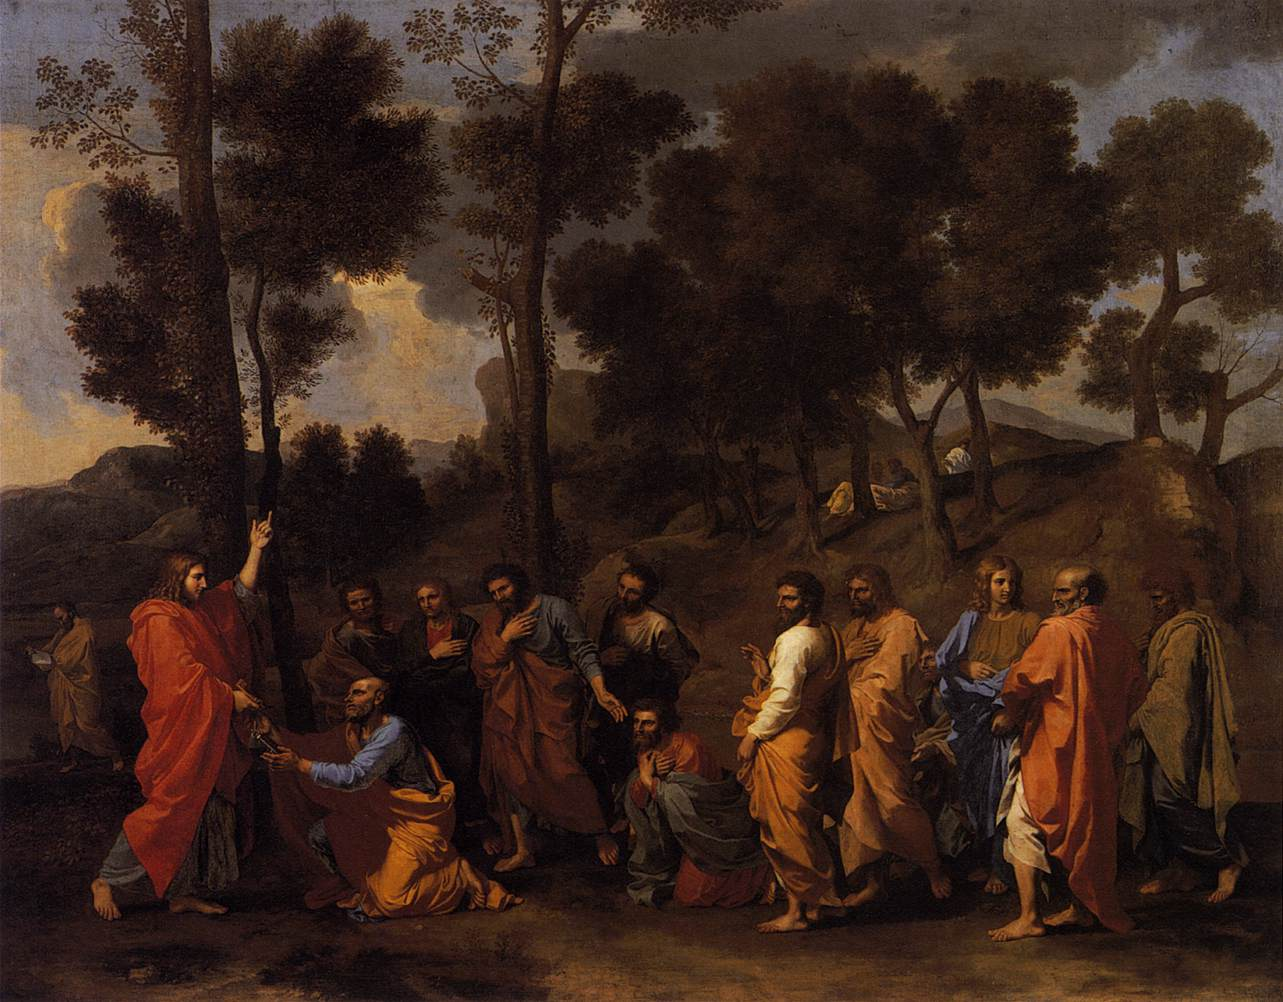 Ordination,1636-40, Nicolas Poussin, (Image courtesy of Kinball art Museum, Fort Worth, Texas)